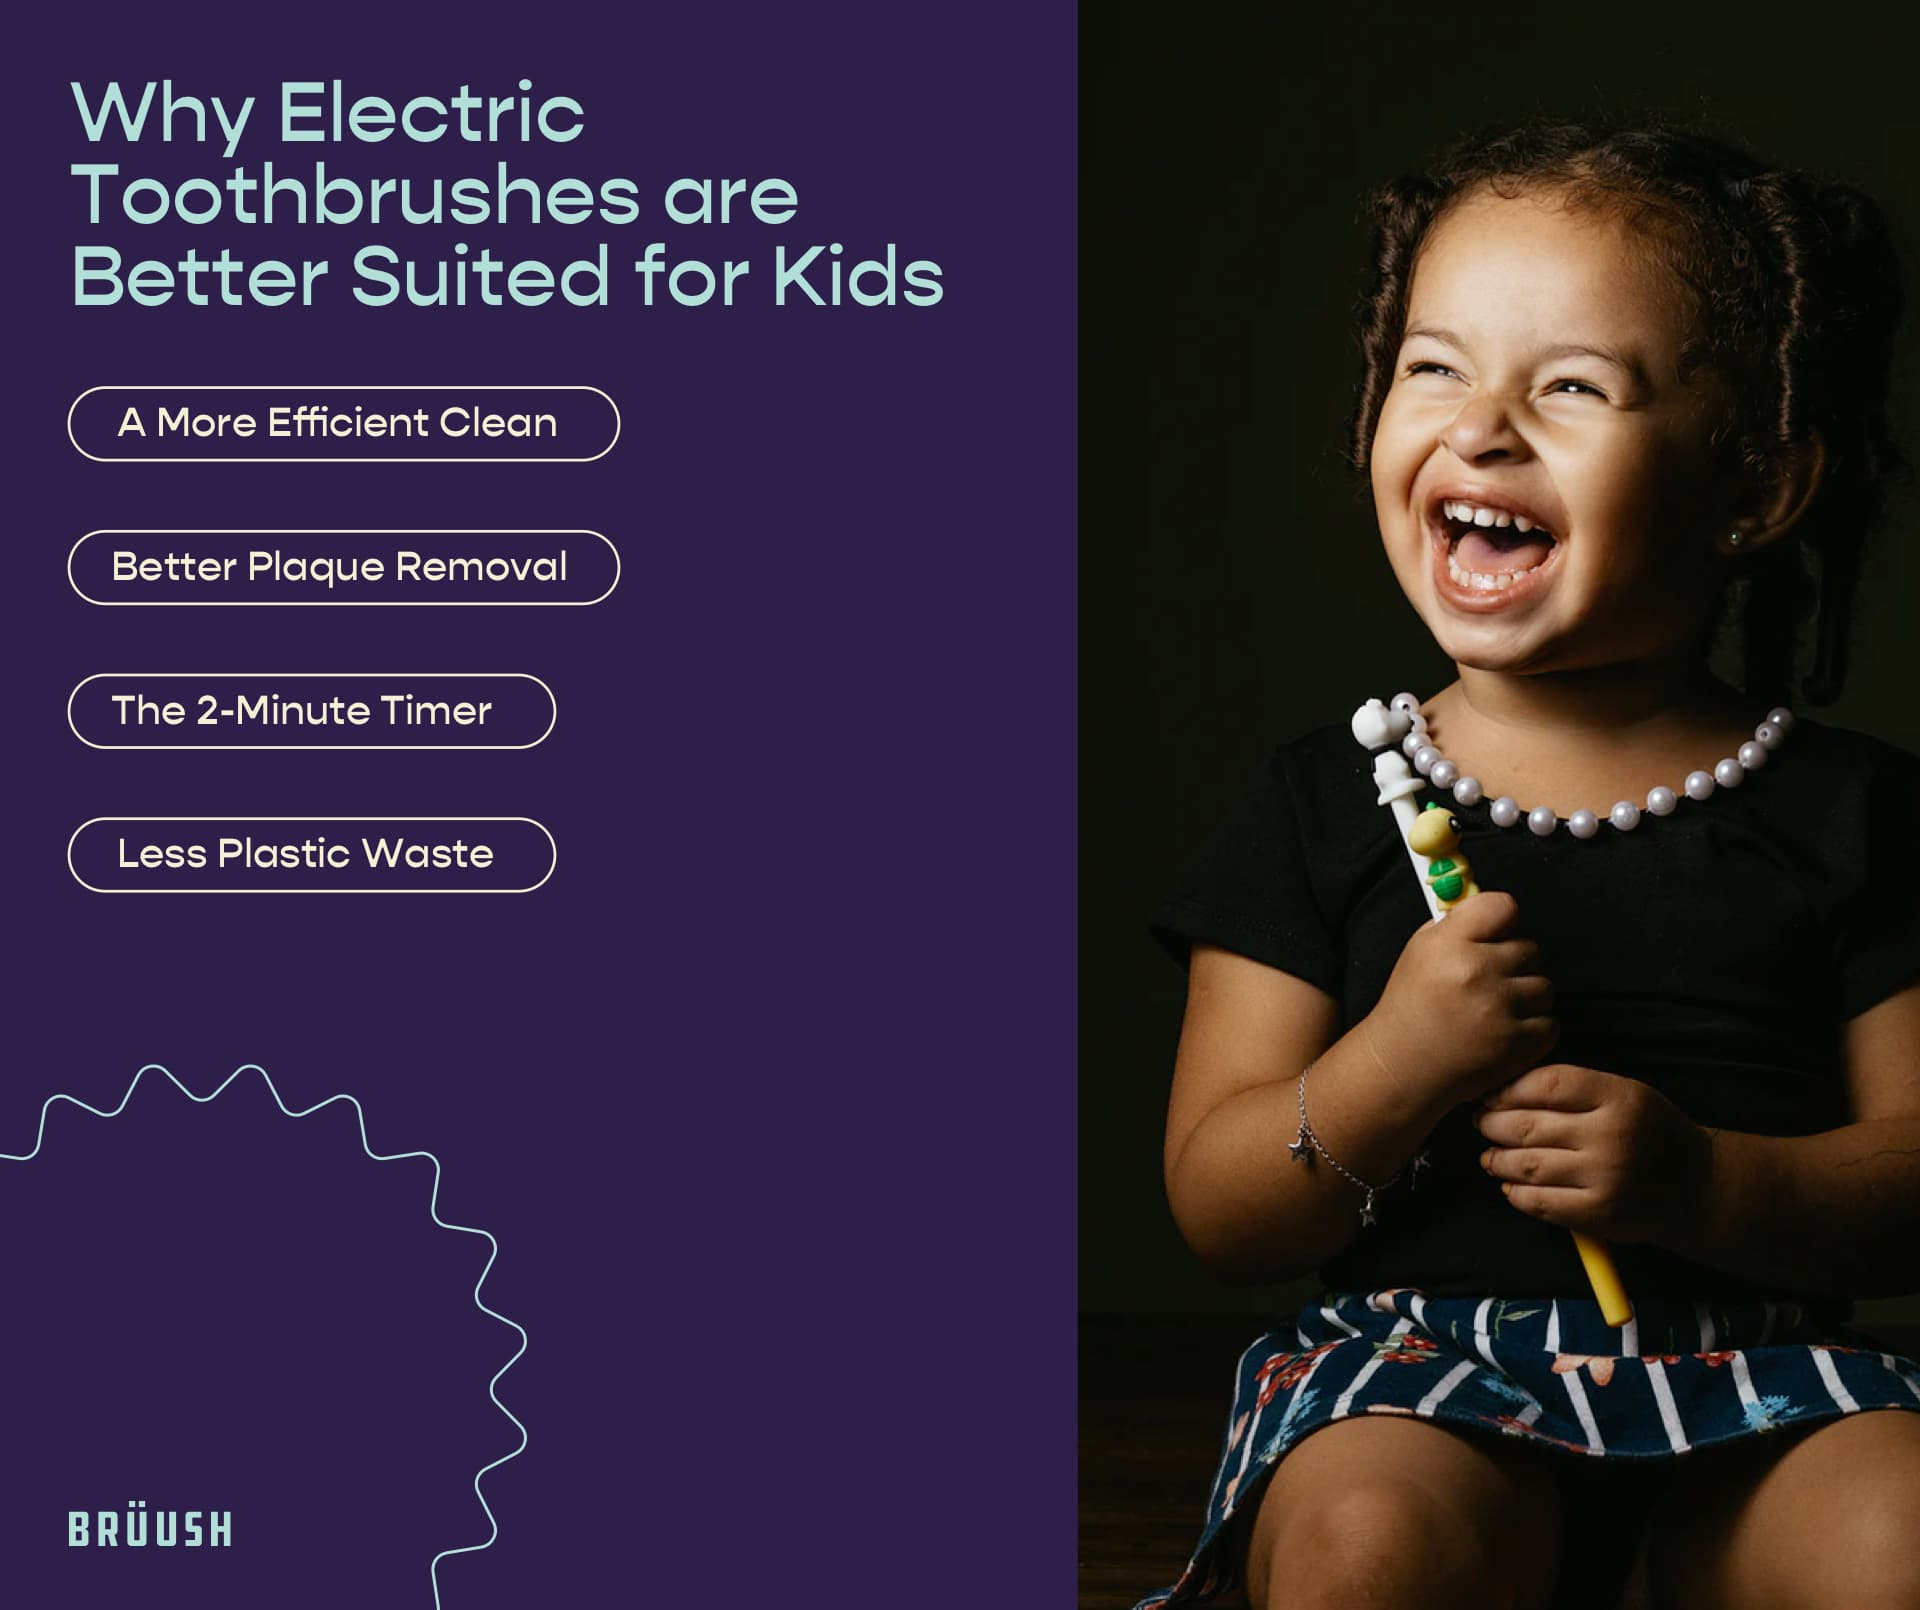 why electric toothbrushes are better suited for kids